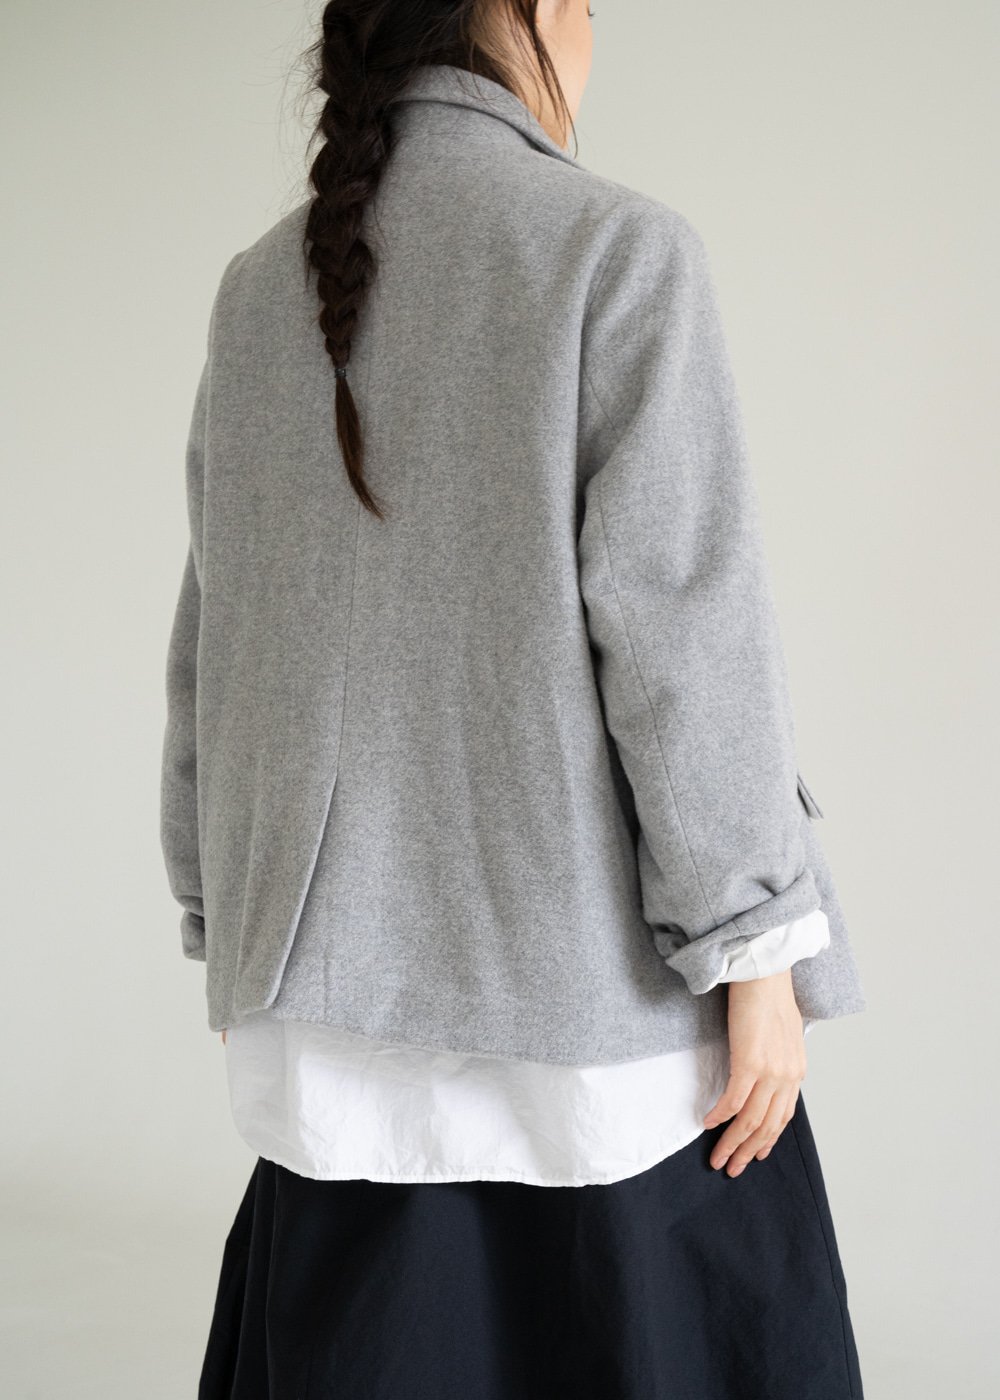 LOOSE FARMER CASHMERE JACKET